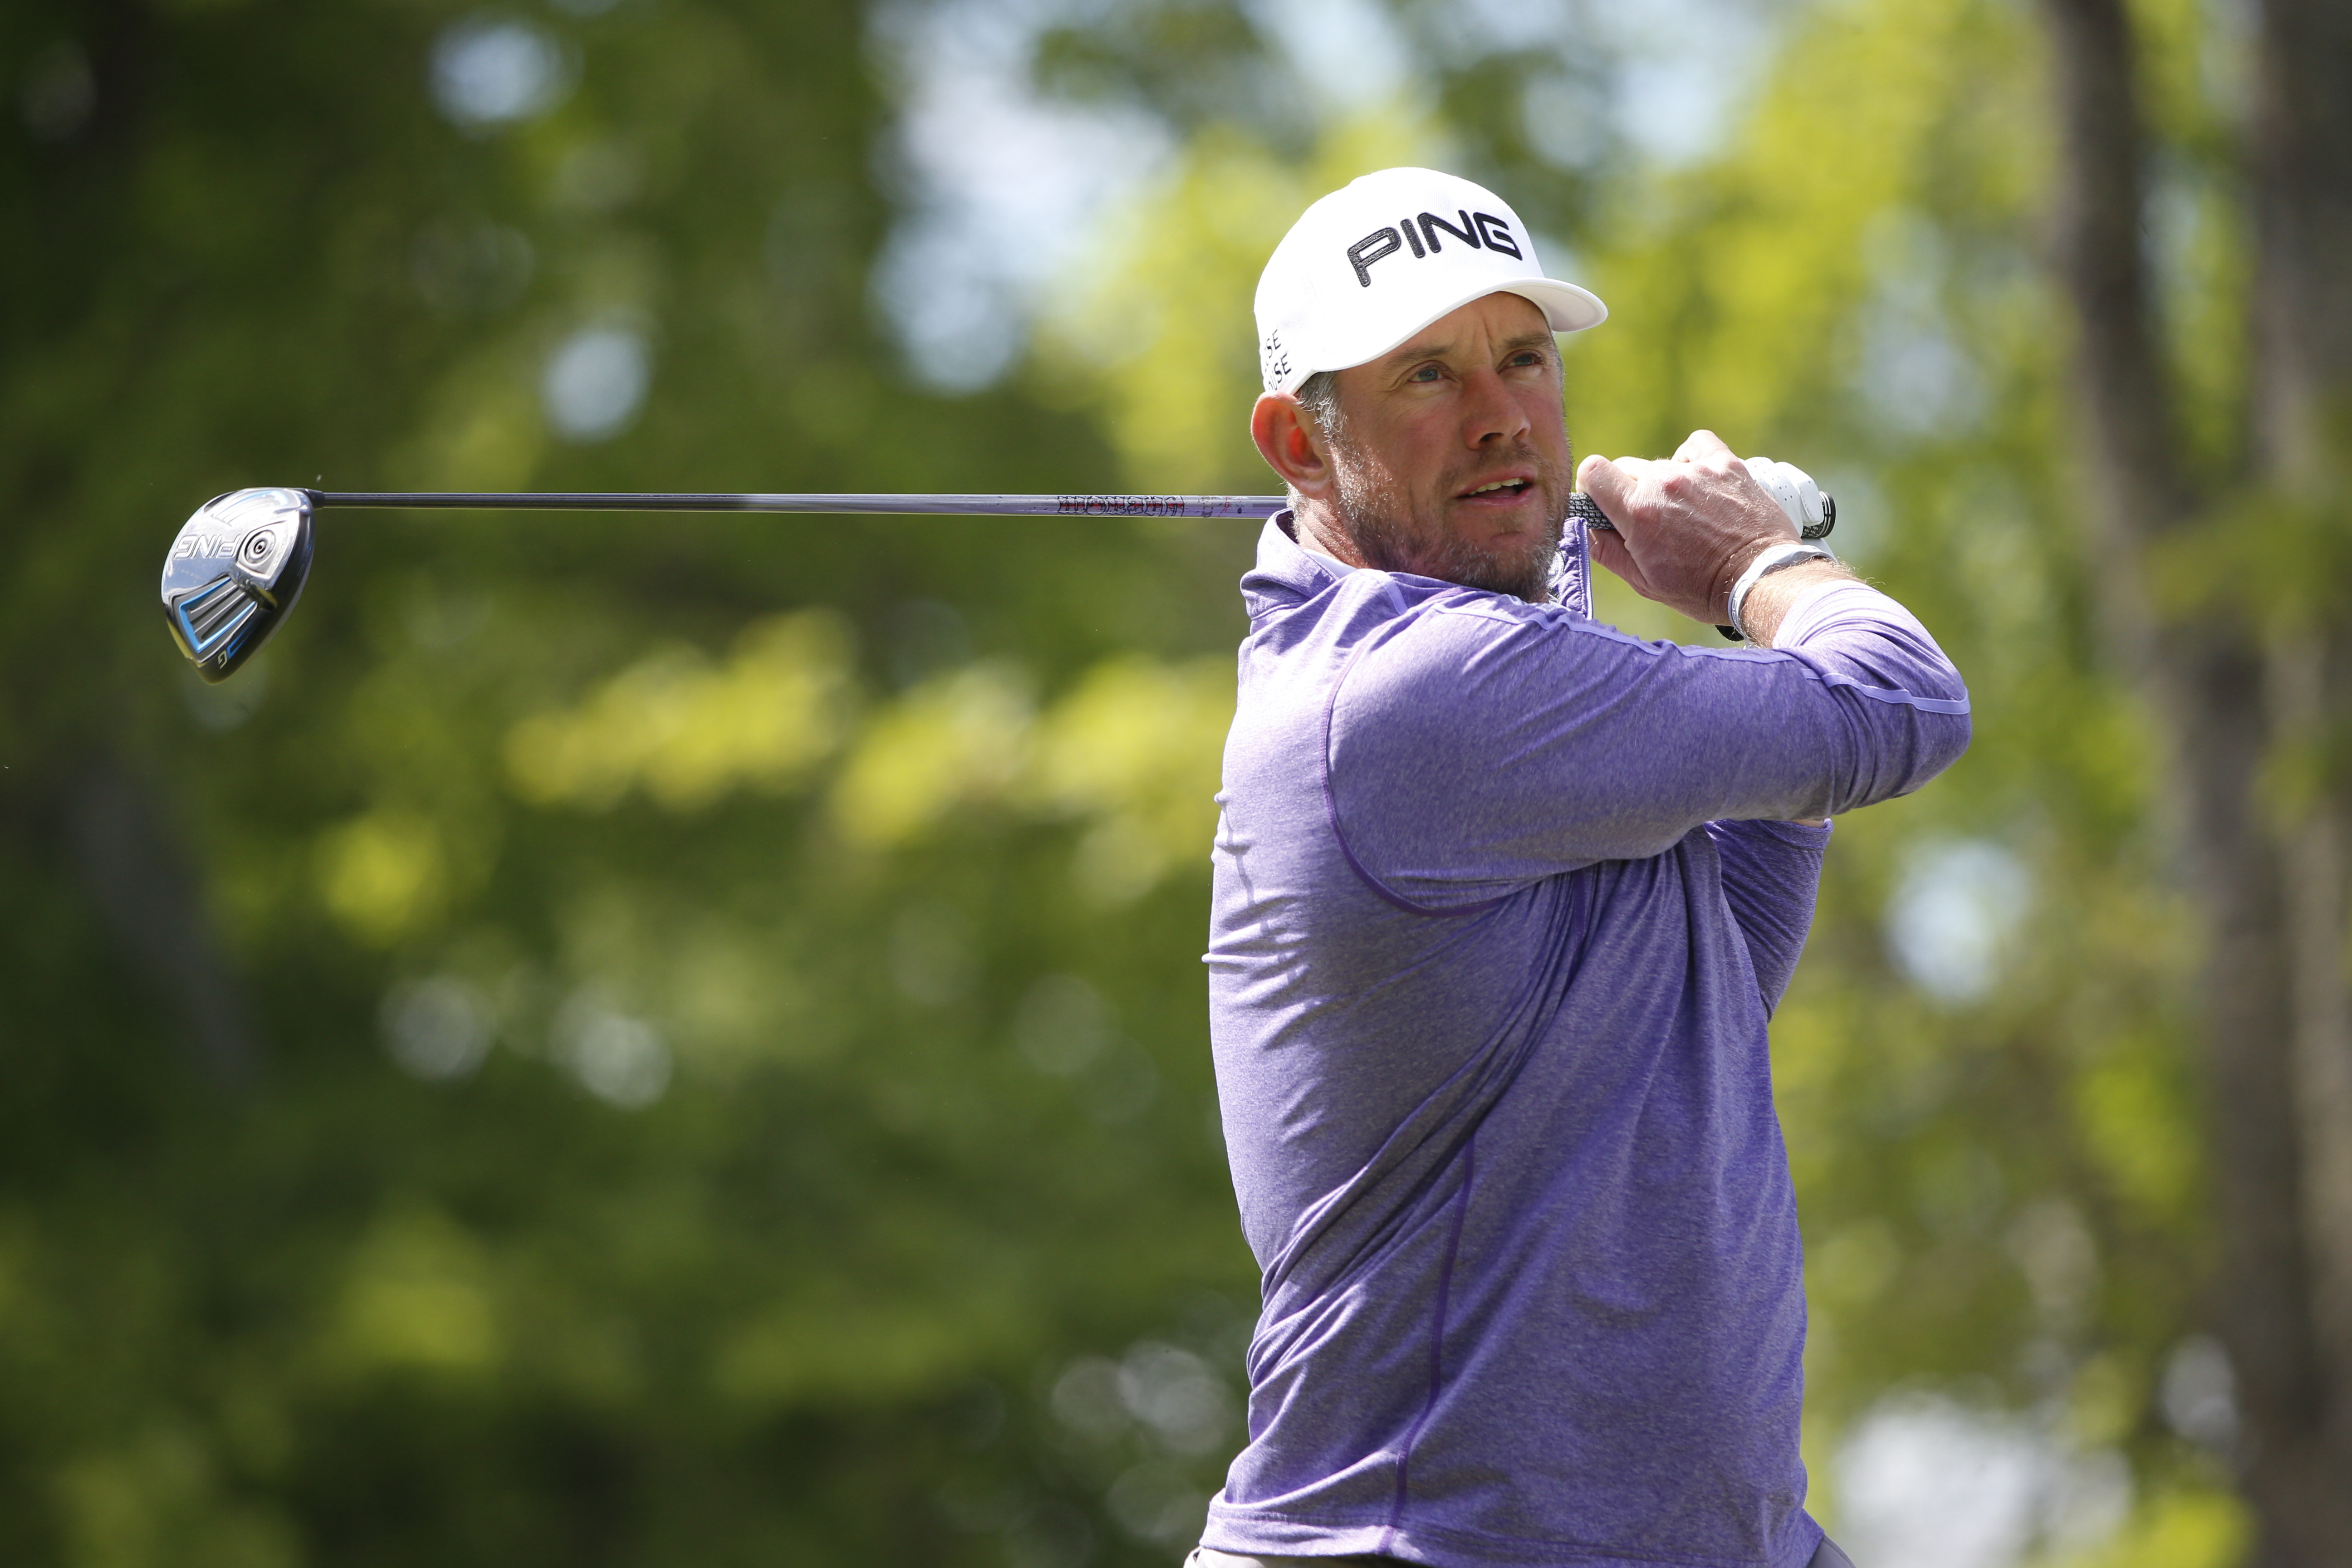 England's Lee Westwood on the second tee during the last round of the Nordea Masters golf tournament at the Bro Hof golf club, Stockholm,  Sunday June 5, 2016. (Fredrik Persson/TT via AP)  SWEDEN OUT